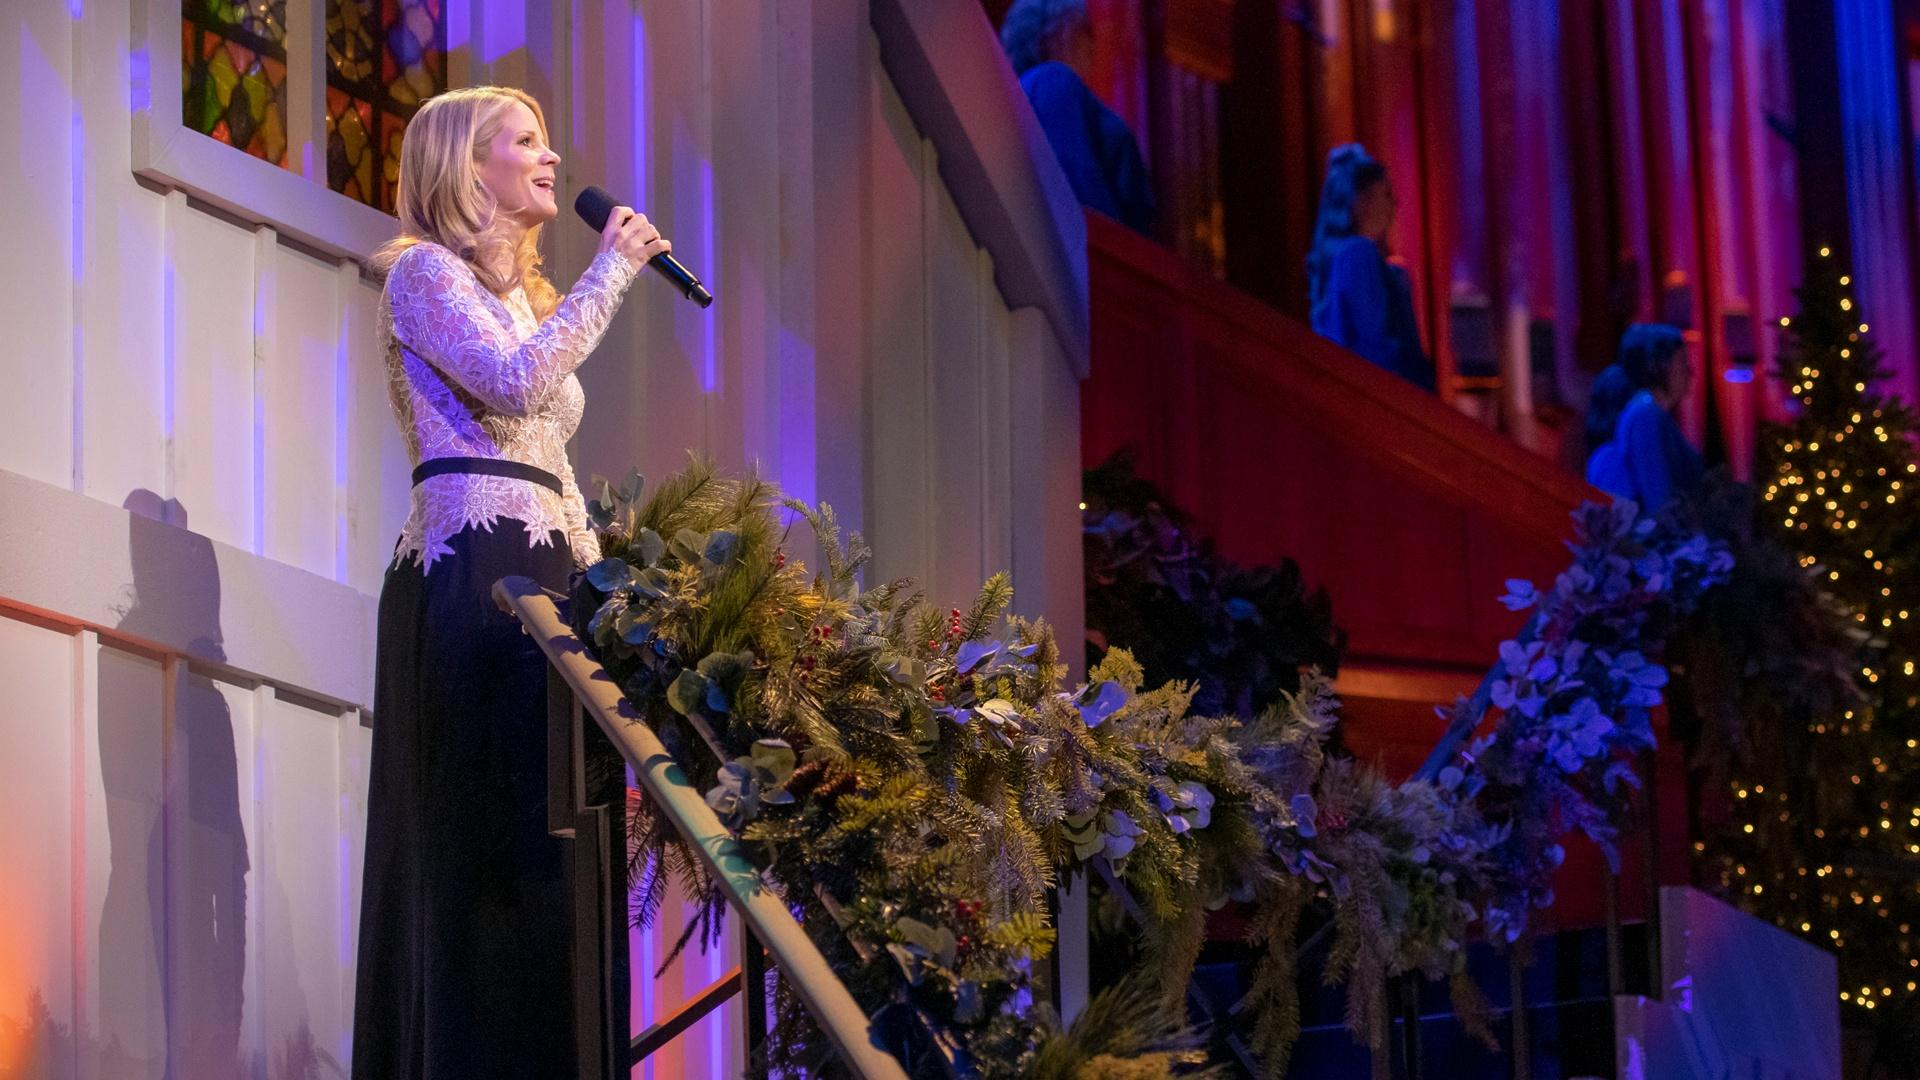 Kristin Chenoweth singing with The Tabernacle Choir behind her.